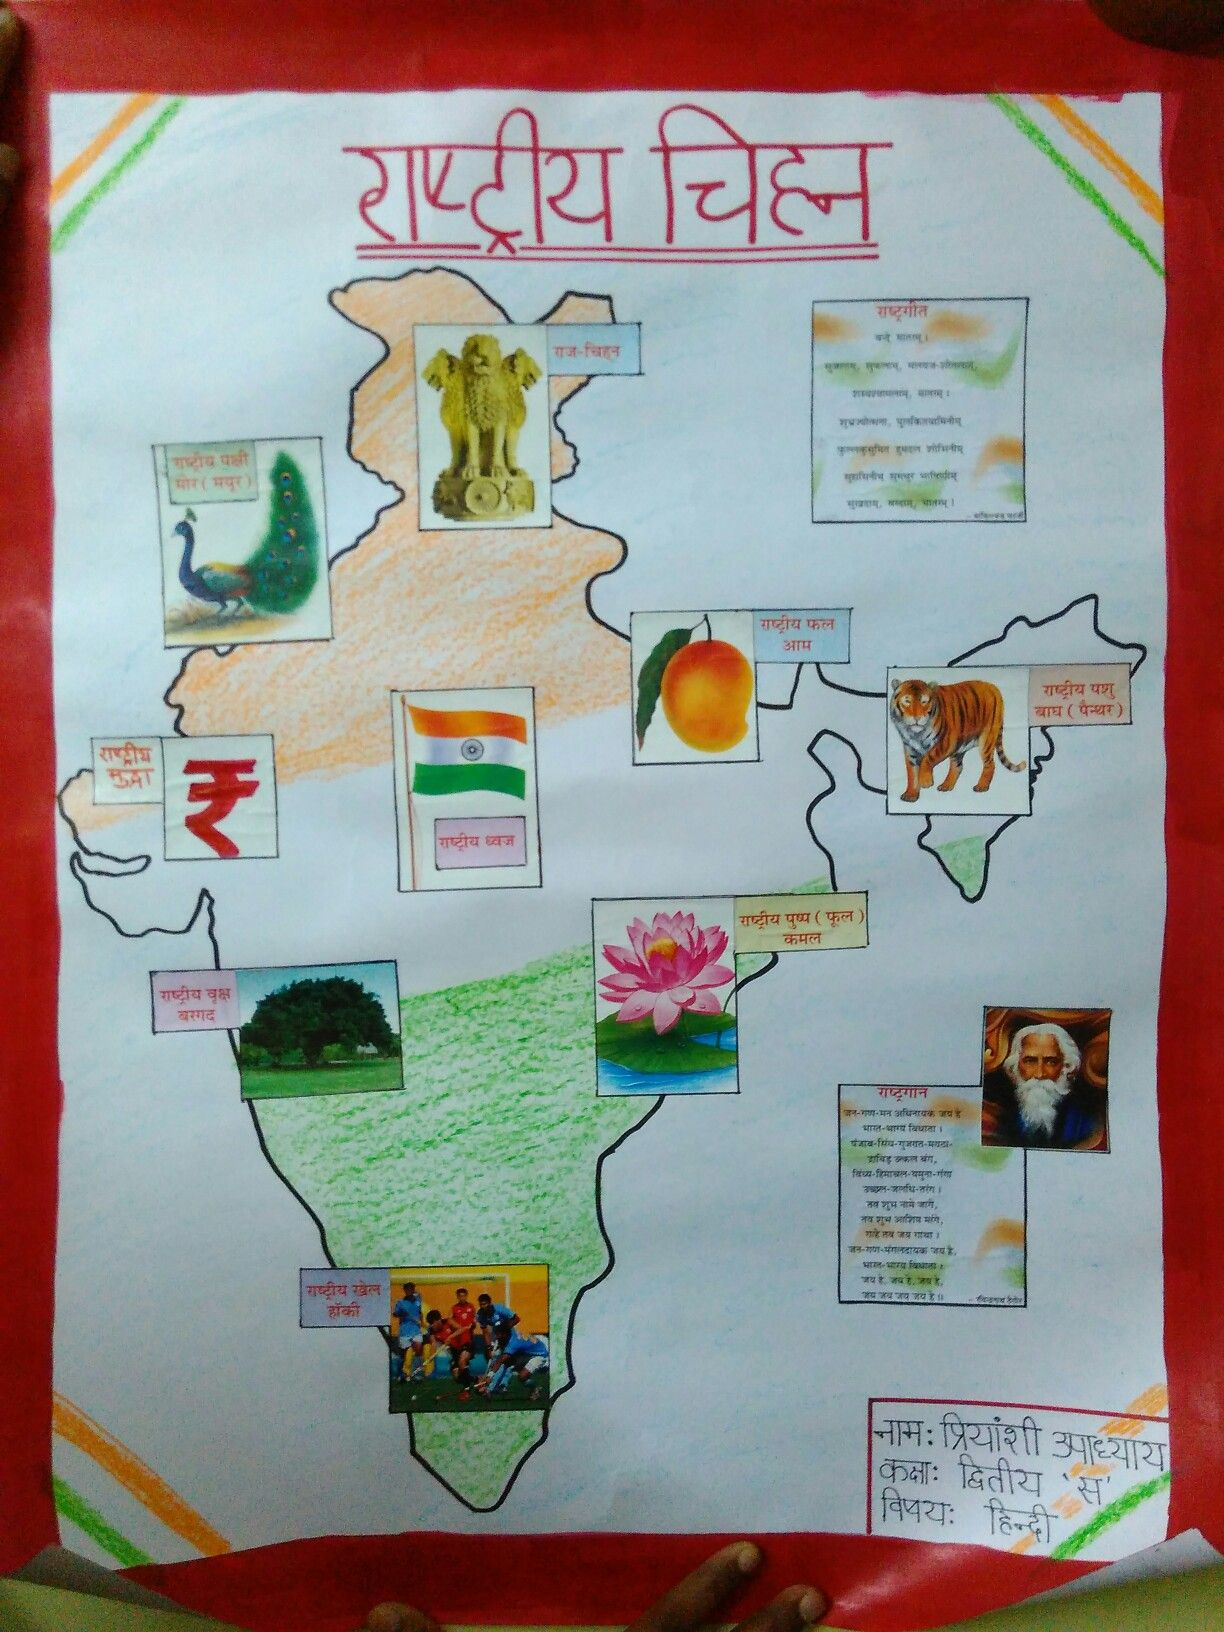 National symbols of india my own creation pinterest national symbols of india biocorpaavc Choice Image